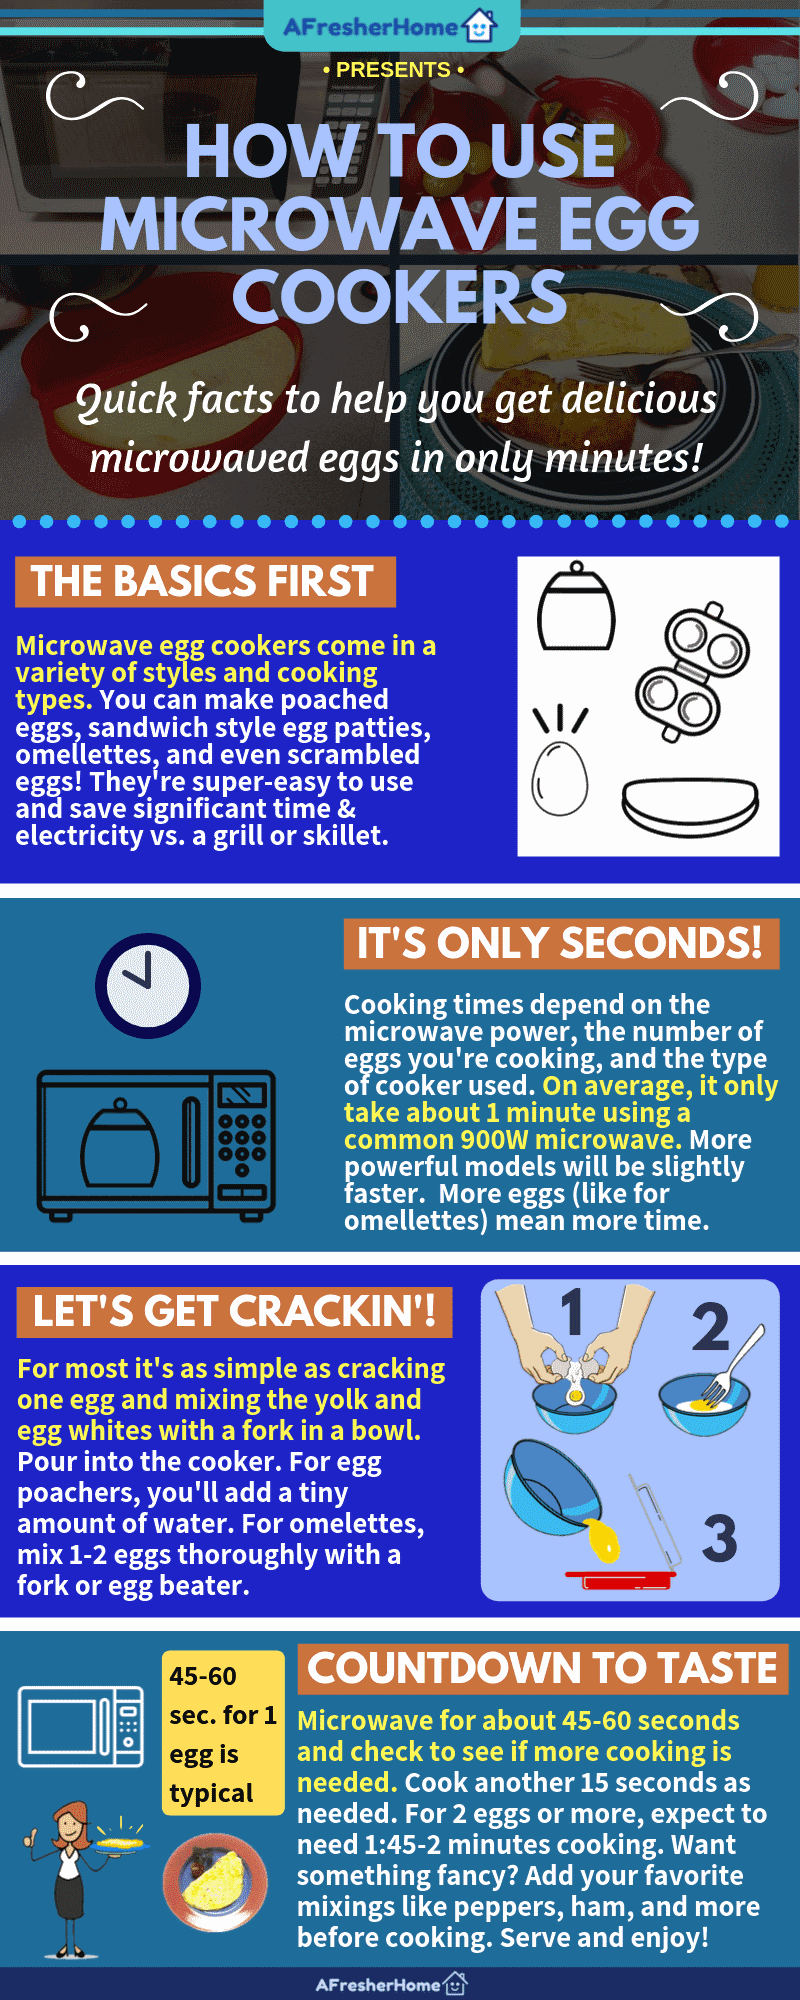 How to use microwave egg cookers infographic